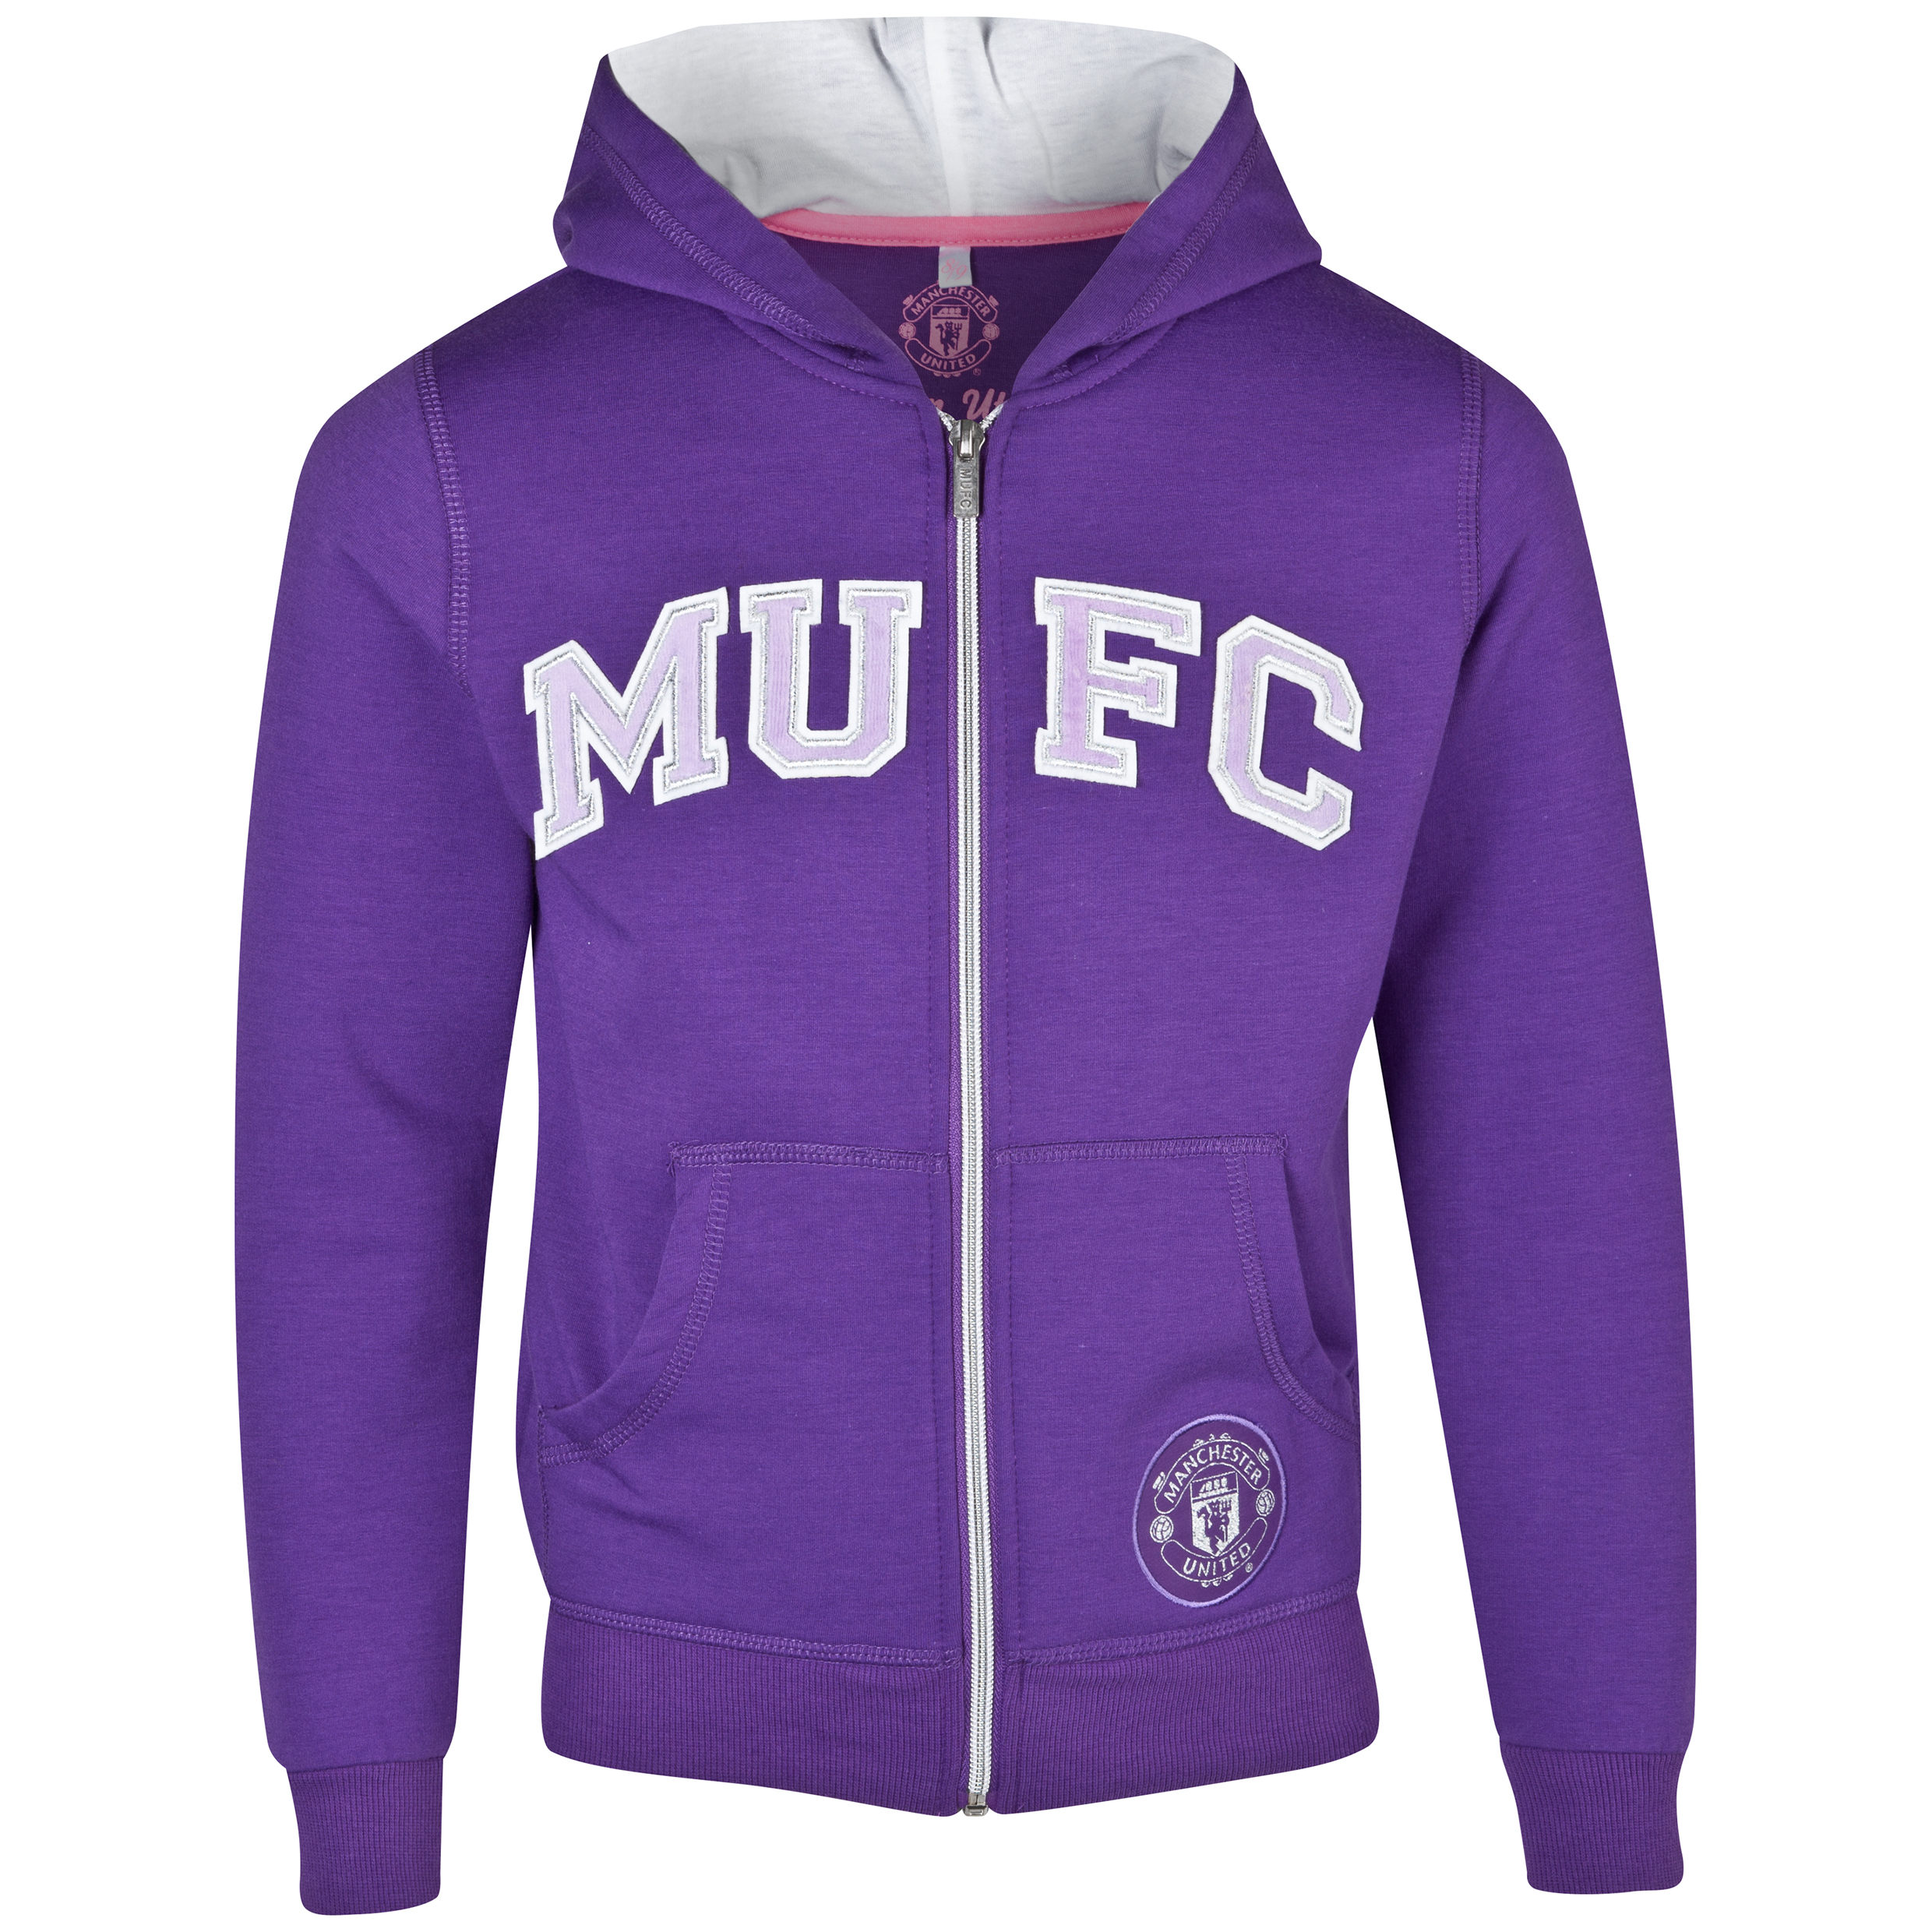 Manchester United Applique Zip Through Hoody - Girls Purple